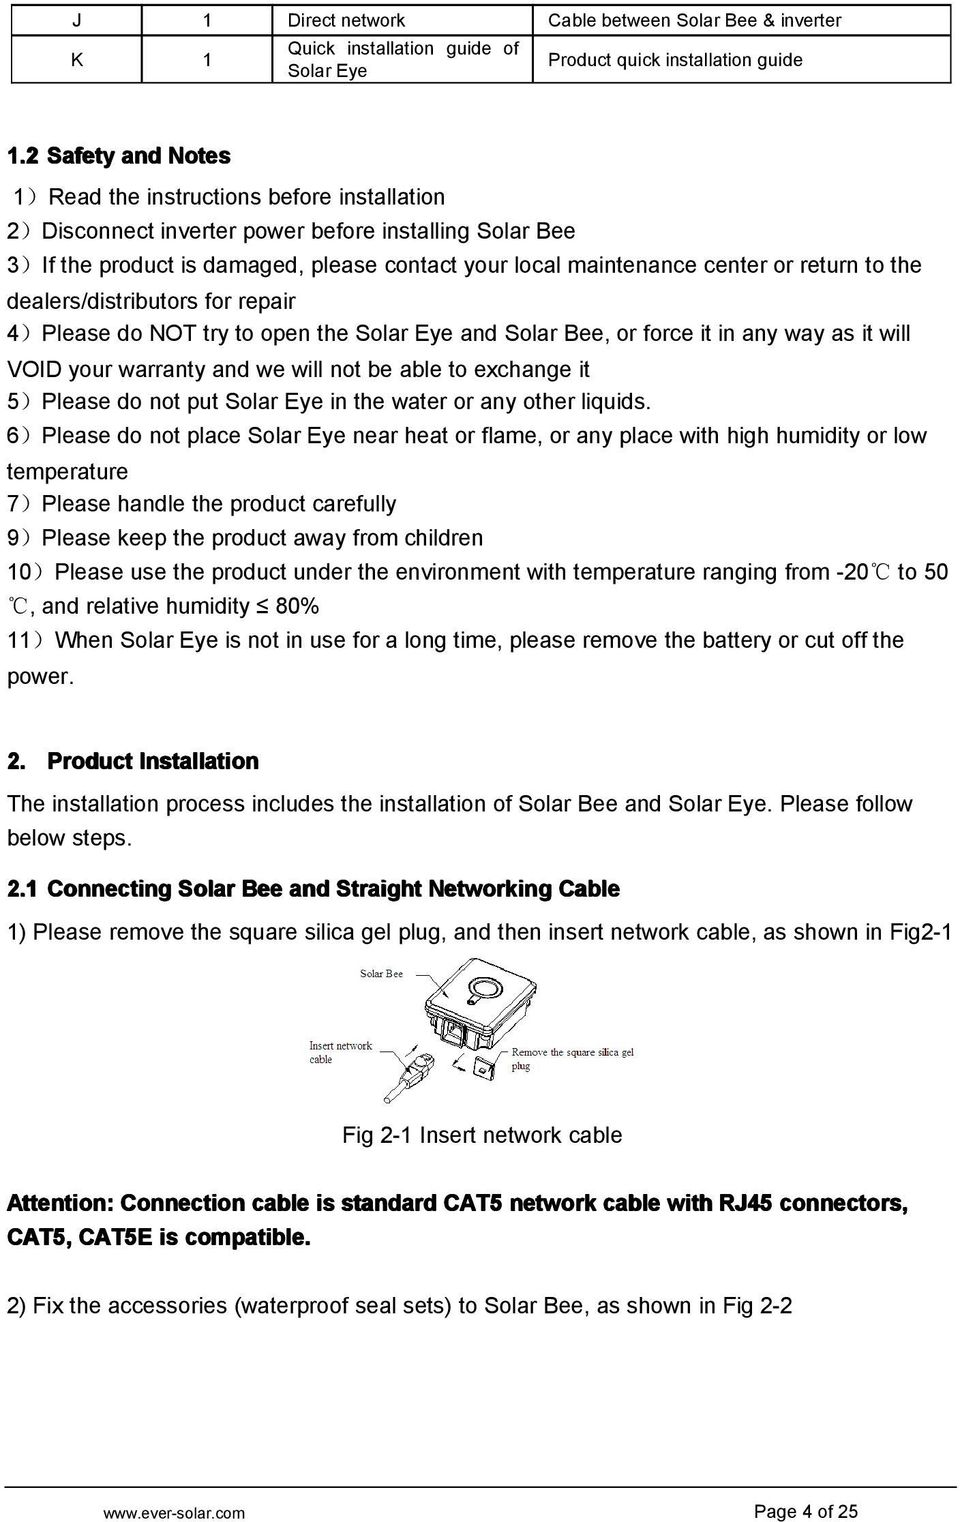 return to the dealers/distributors for repair 4)Please do NOT try to open the Solar Eye and Solar Bee, or force it in any way as it will VOID your warranty and we will not be able to exchange it